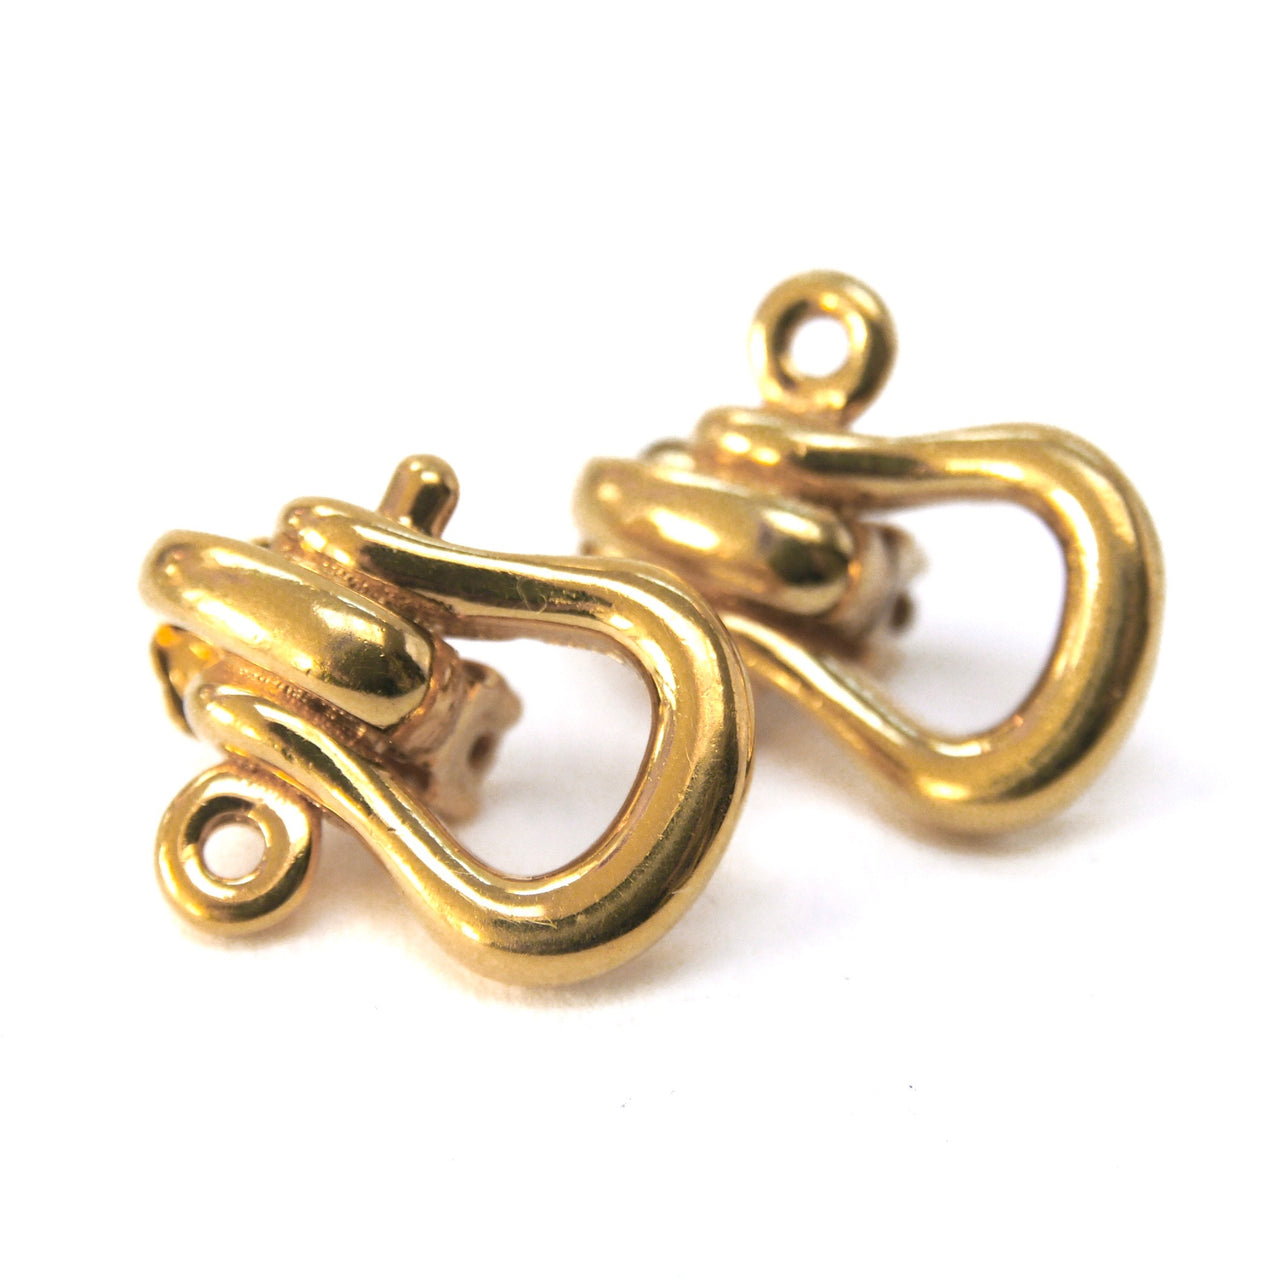 Burberrys Clip On Earrings, Gold Plate